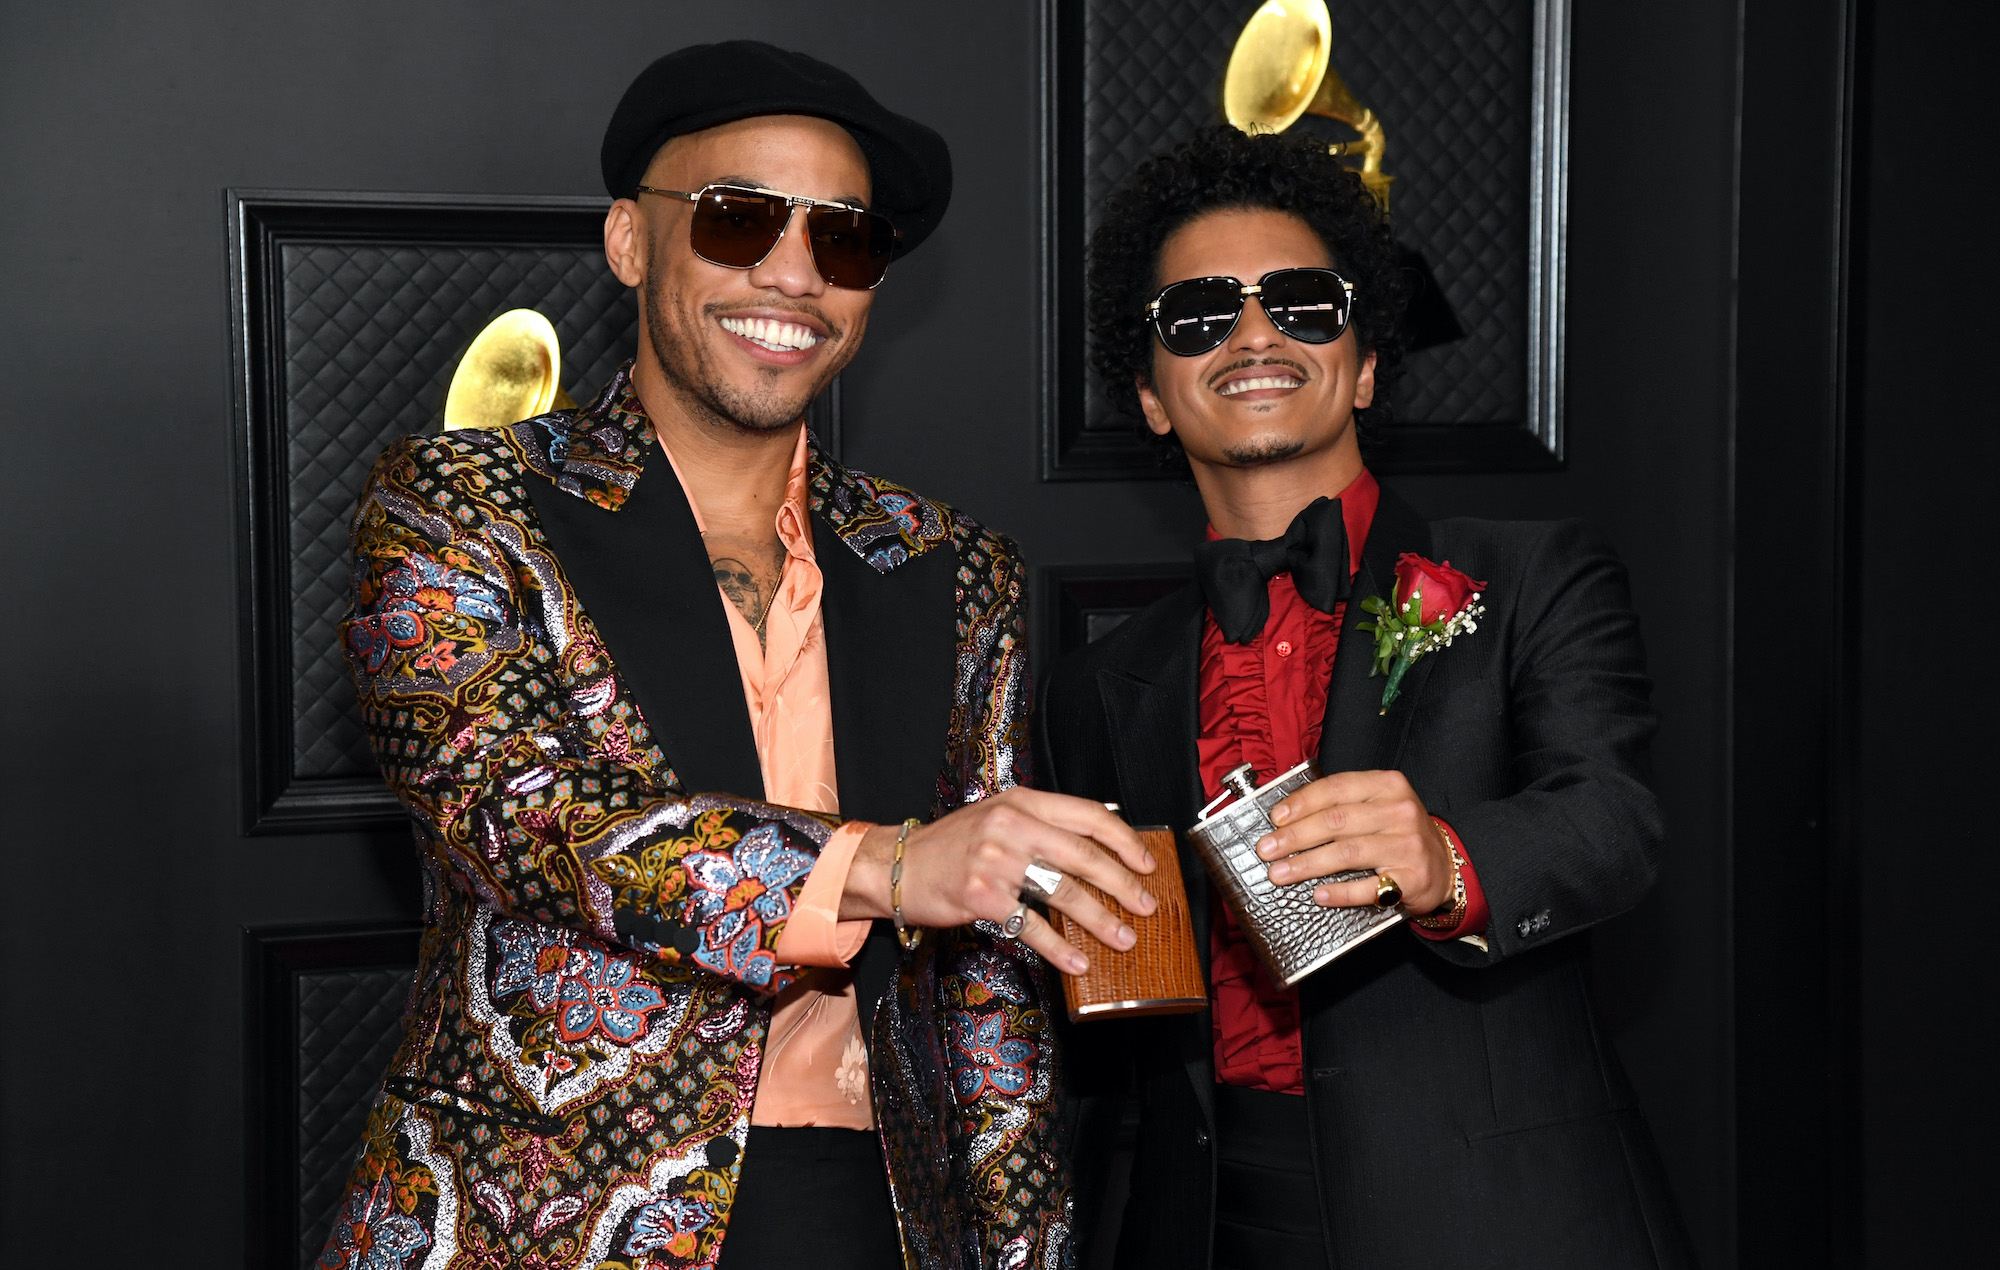 Bruno Mars and Anderson .Paak give first live performance as Silk Sonic at Grammys 2021